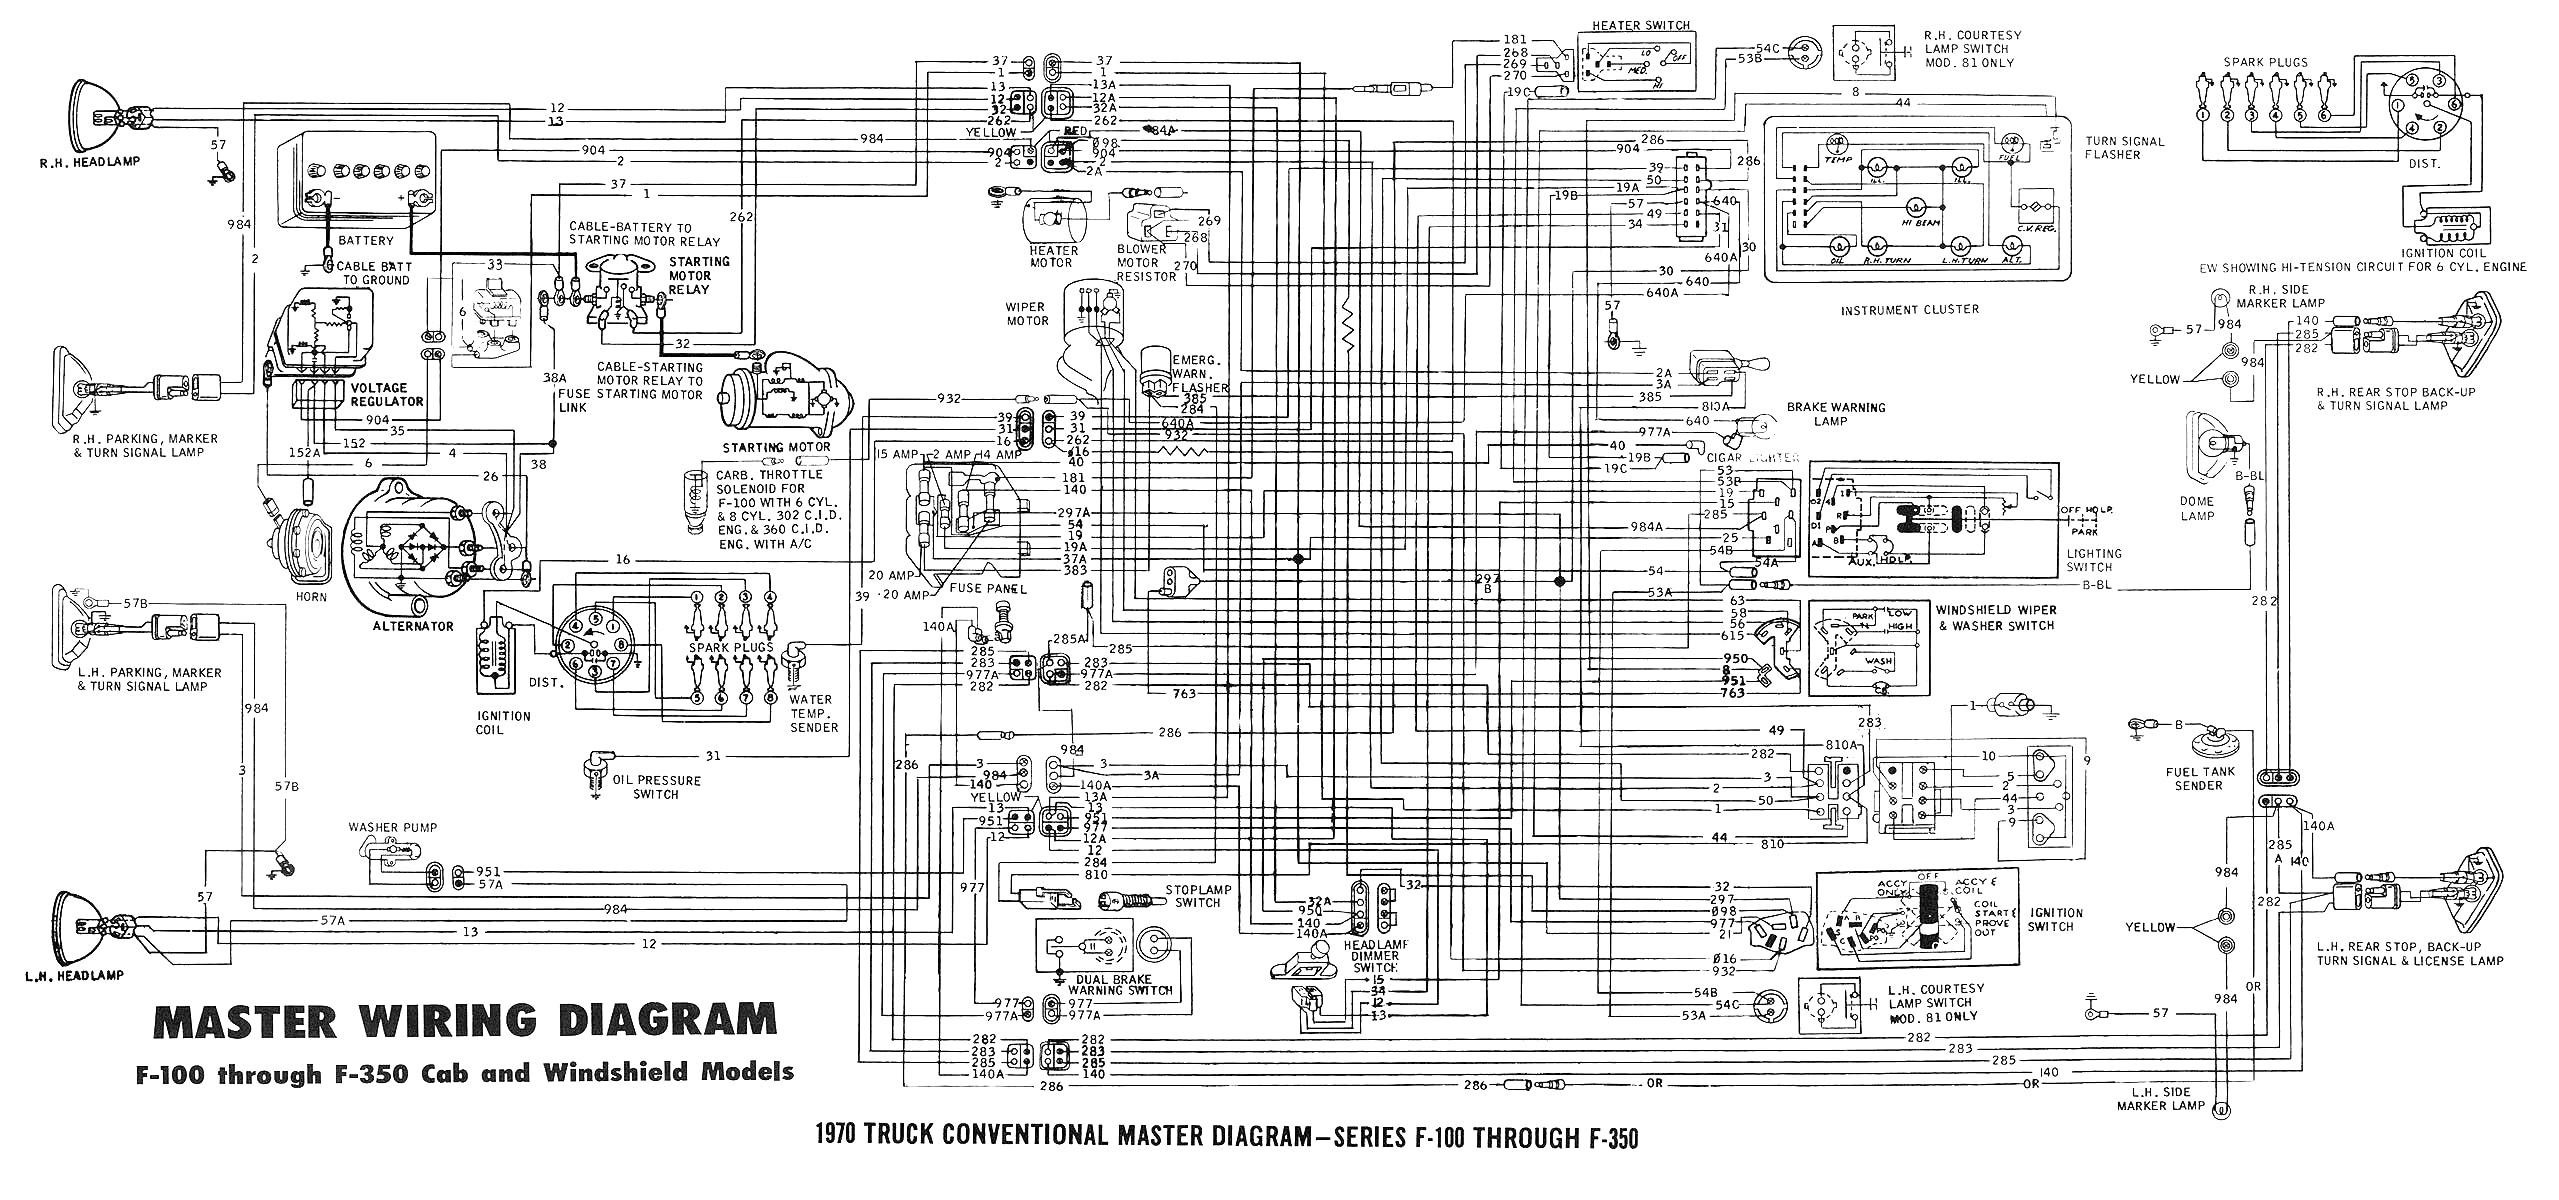 Unique 1983 Jaguar Xj6 Wiring Diagram Inspiration - Everything You ...